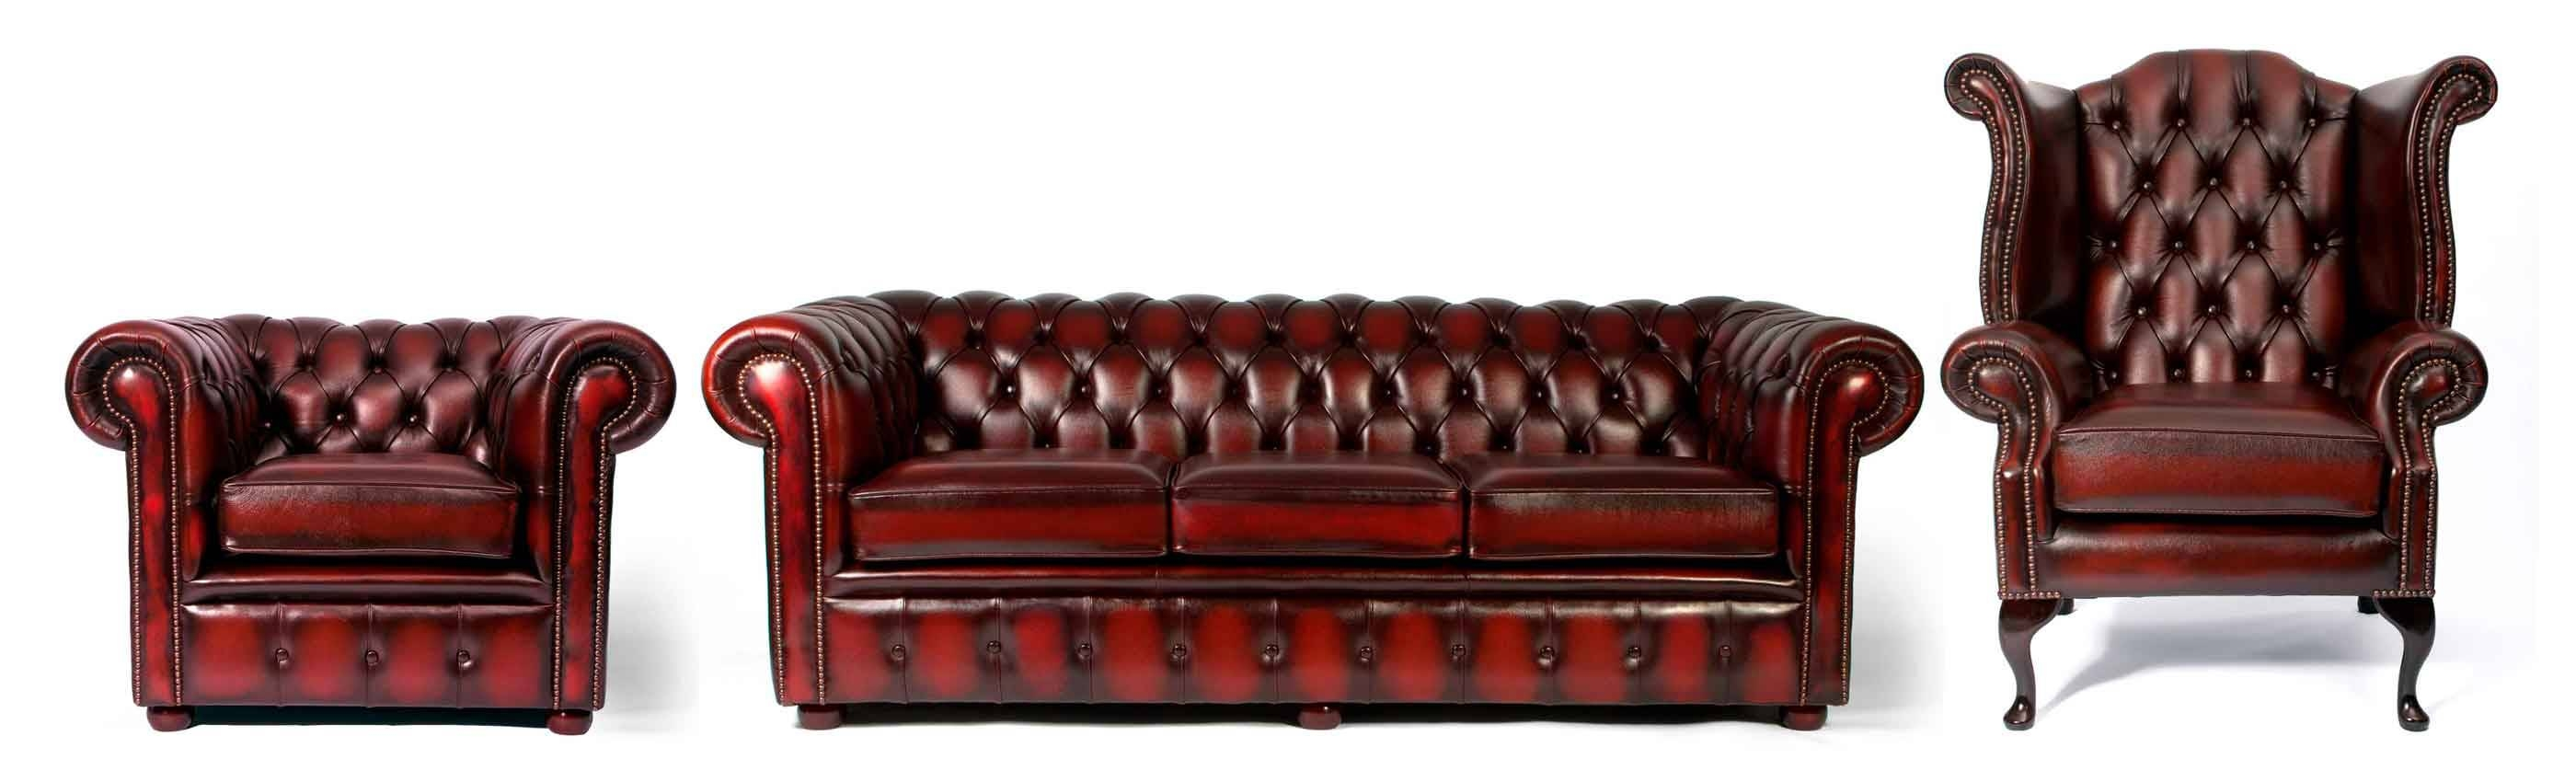 Furniture: Enchanting Chesterfield Couch For Living Room Furniture within Tufted Leather Chesterfield Sofas (Image 10 of 30)